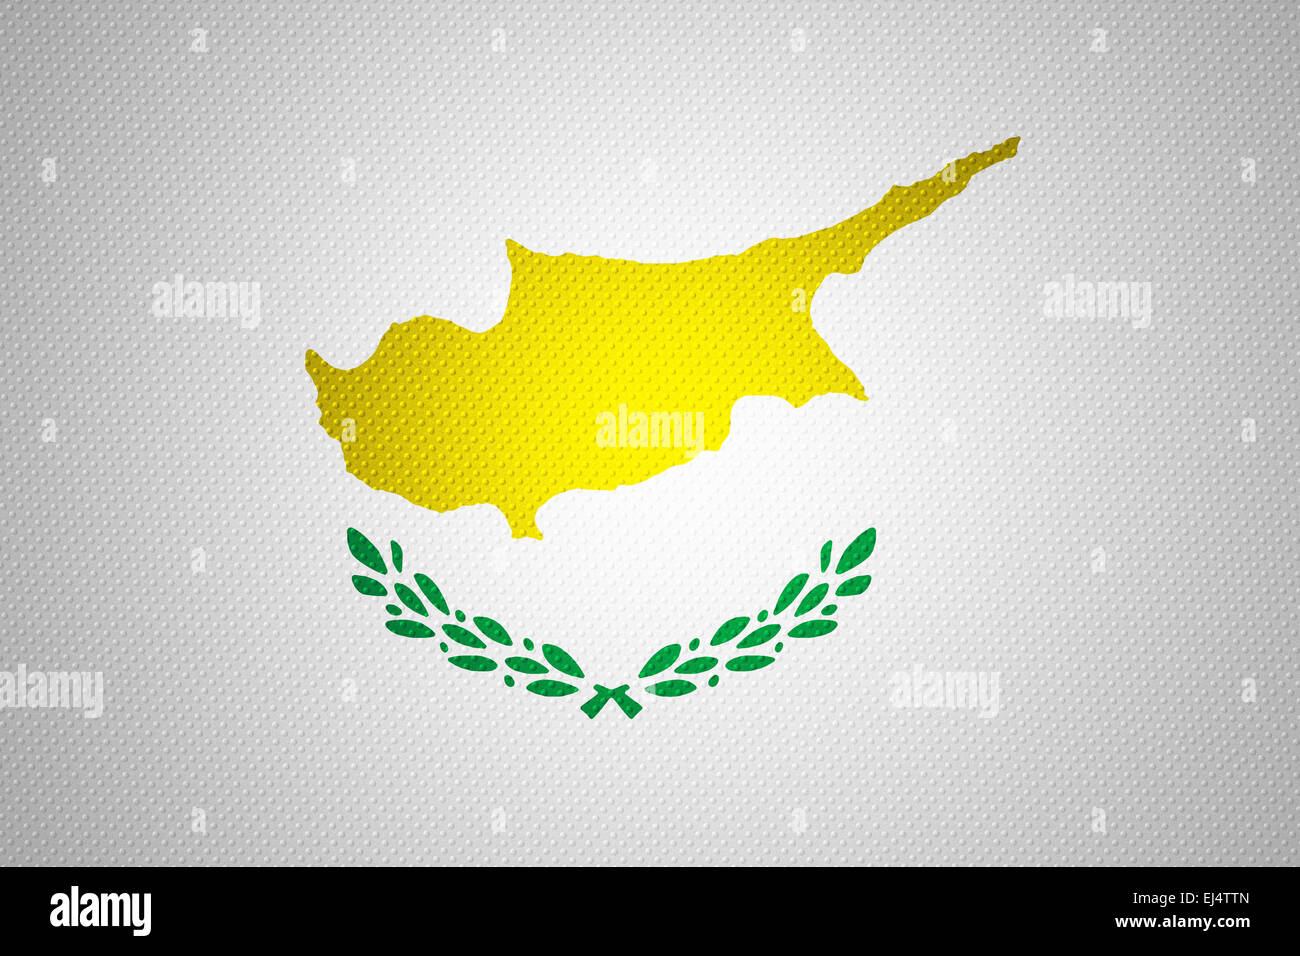 Cyprus flag or Cypriot banner on abstract texture - Stock Image